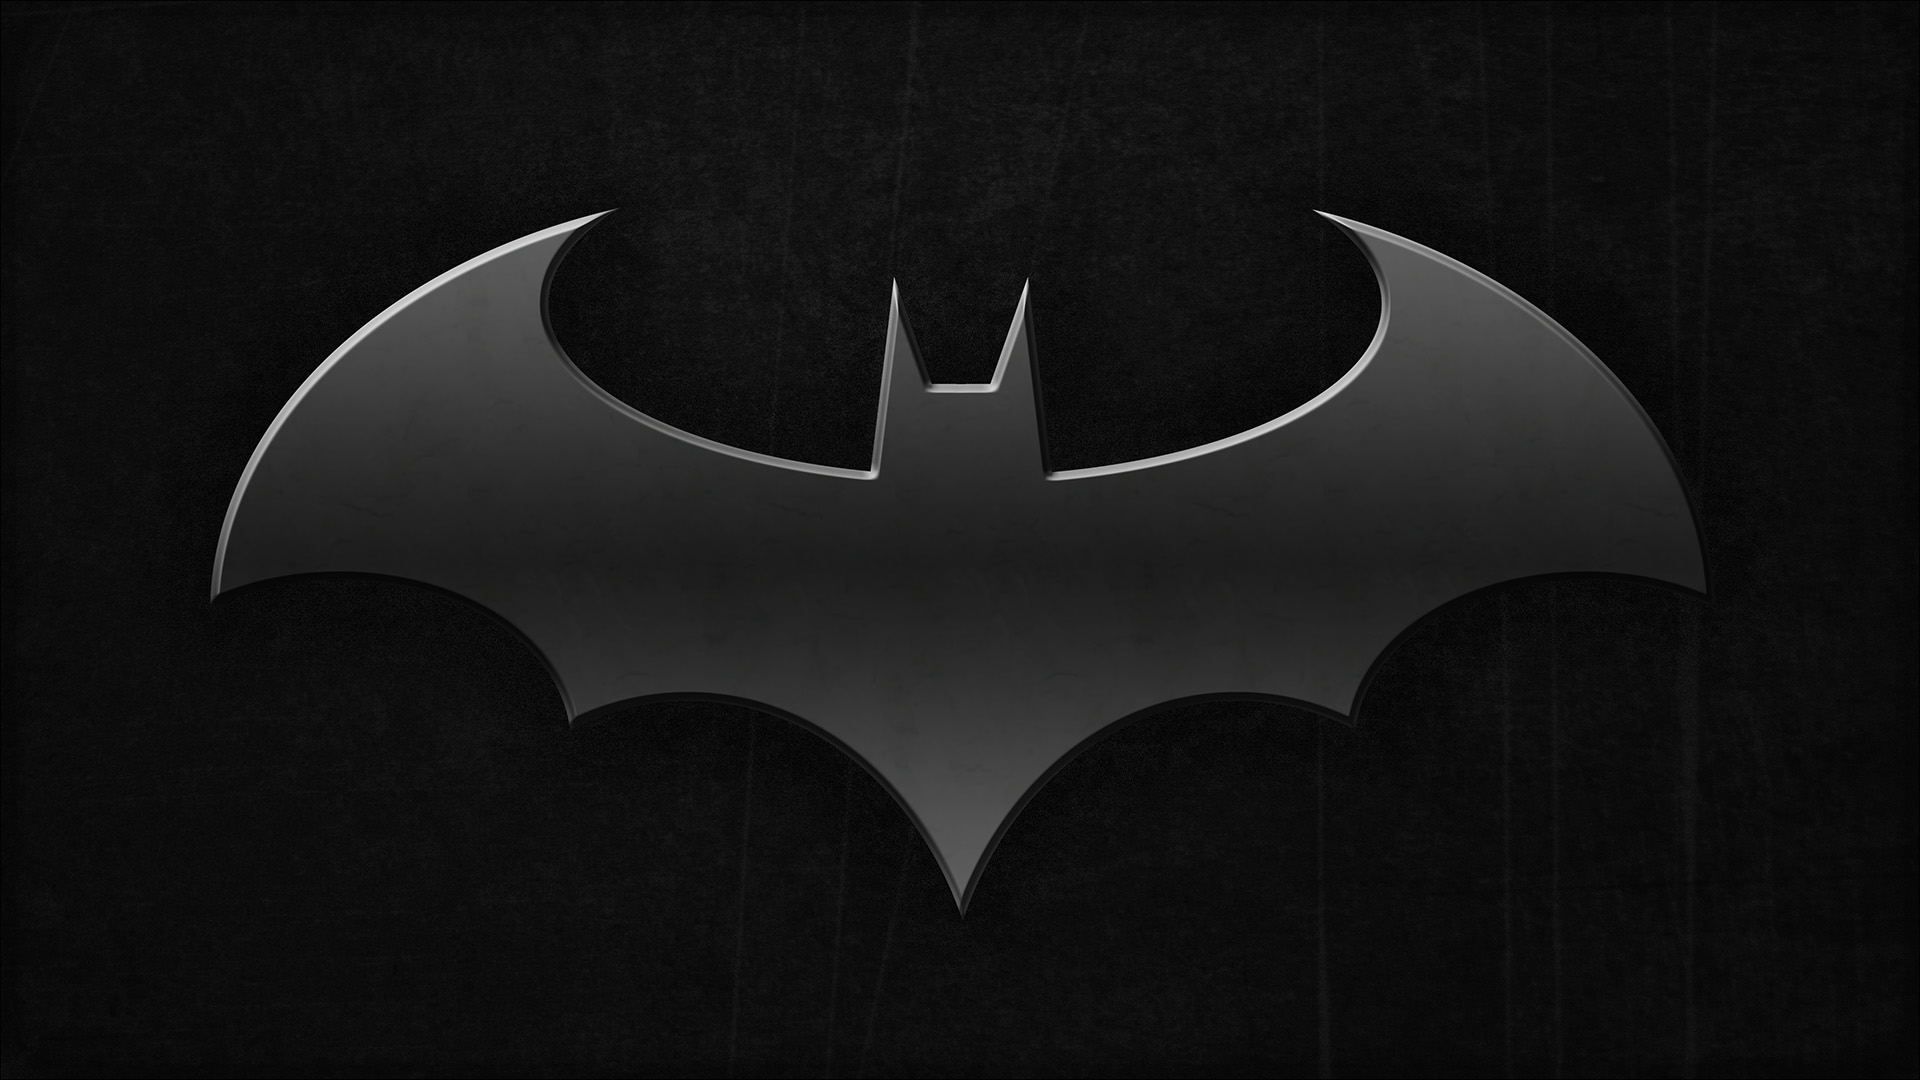 batman-logo-by-deathonabun-dsff-1920%C3%971080-wallpaper-wp3802857